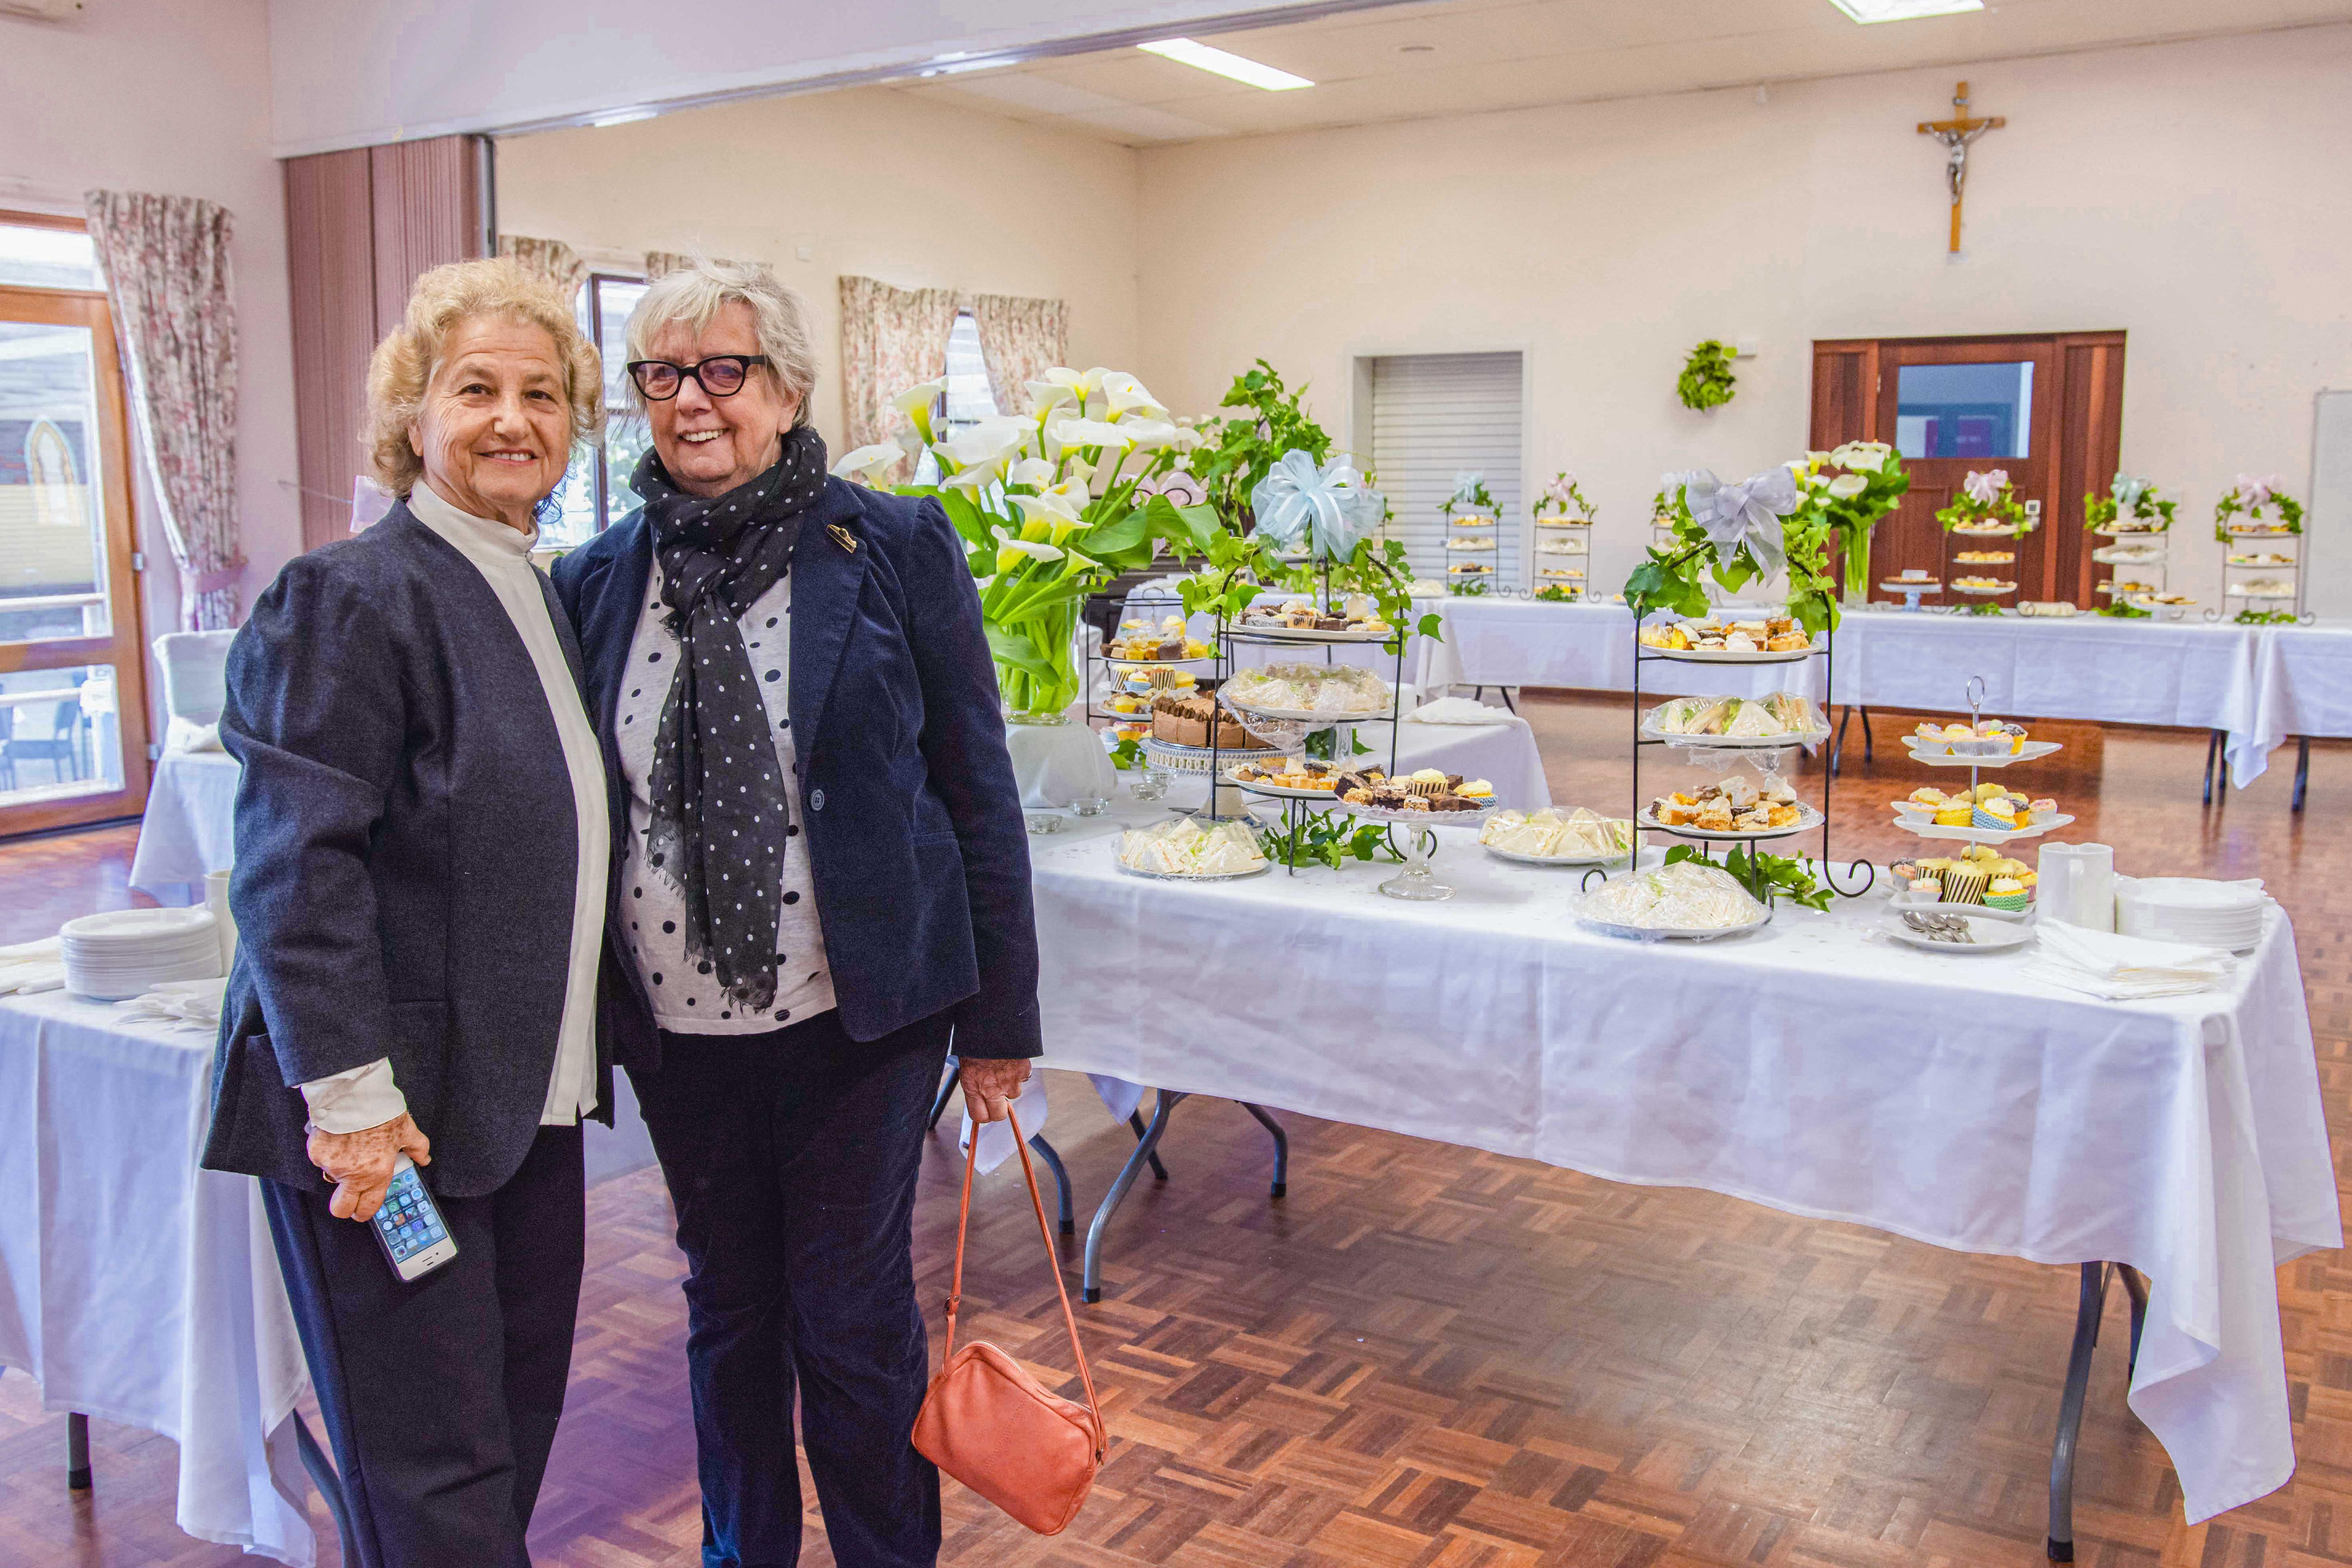 The Kalamunda parish hall has now been restored to its original size after the office extensions were made. Photo: Amanda Murthy.